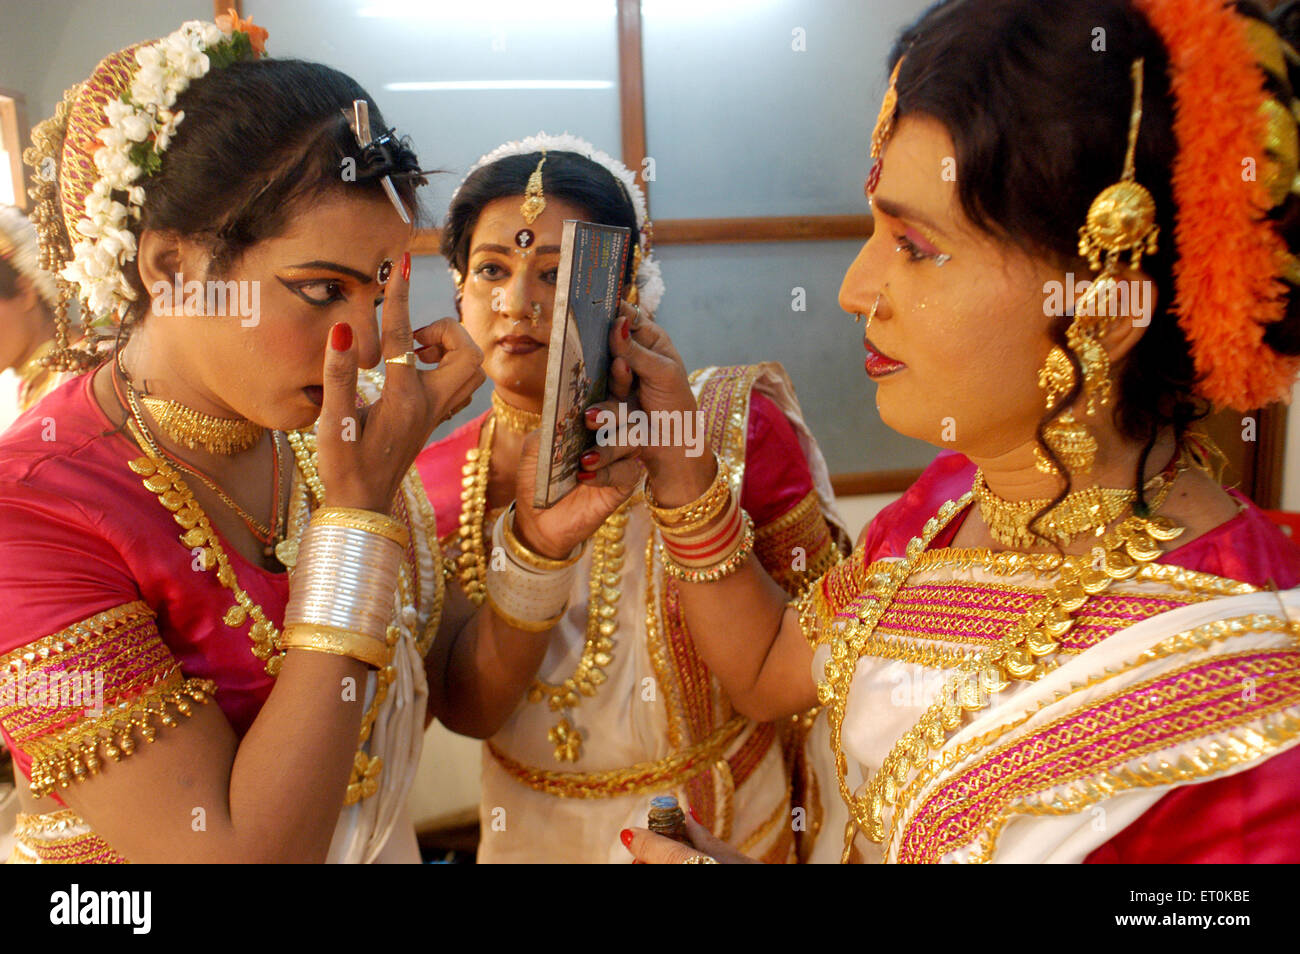 Giving final touches before show Bin Baicha Tamasha ; India NO MR - Stock Image